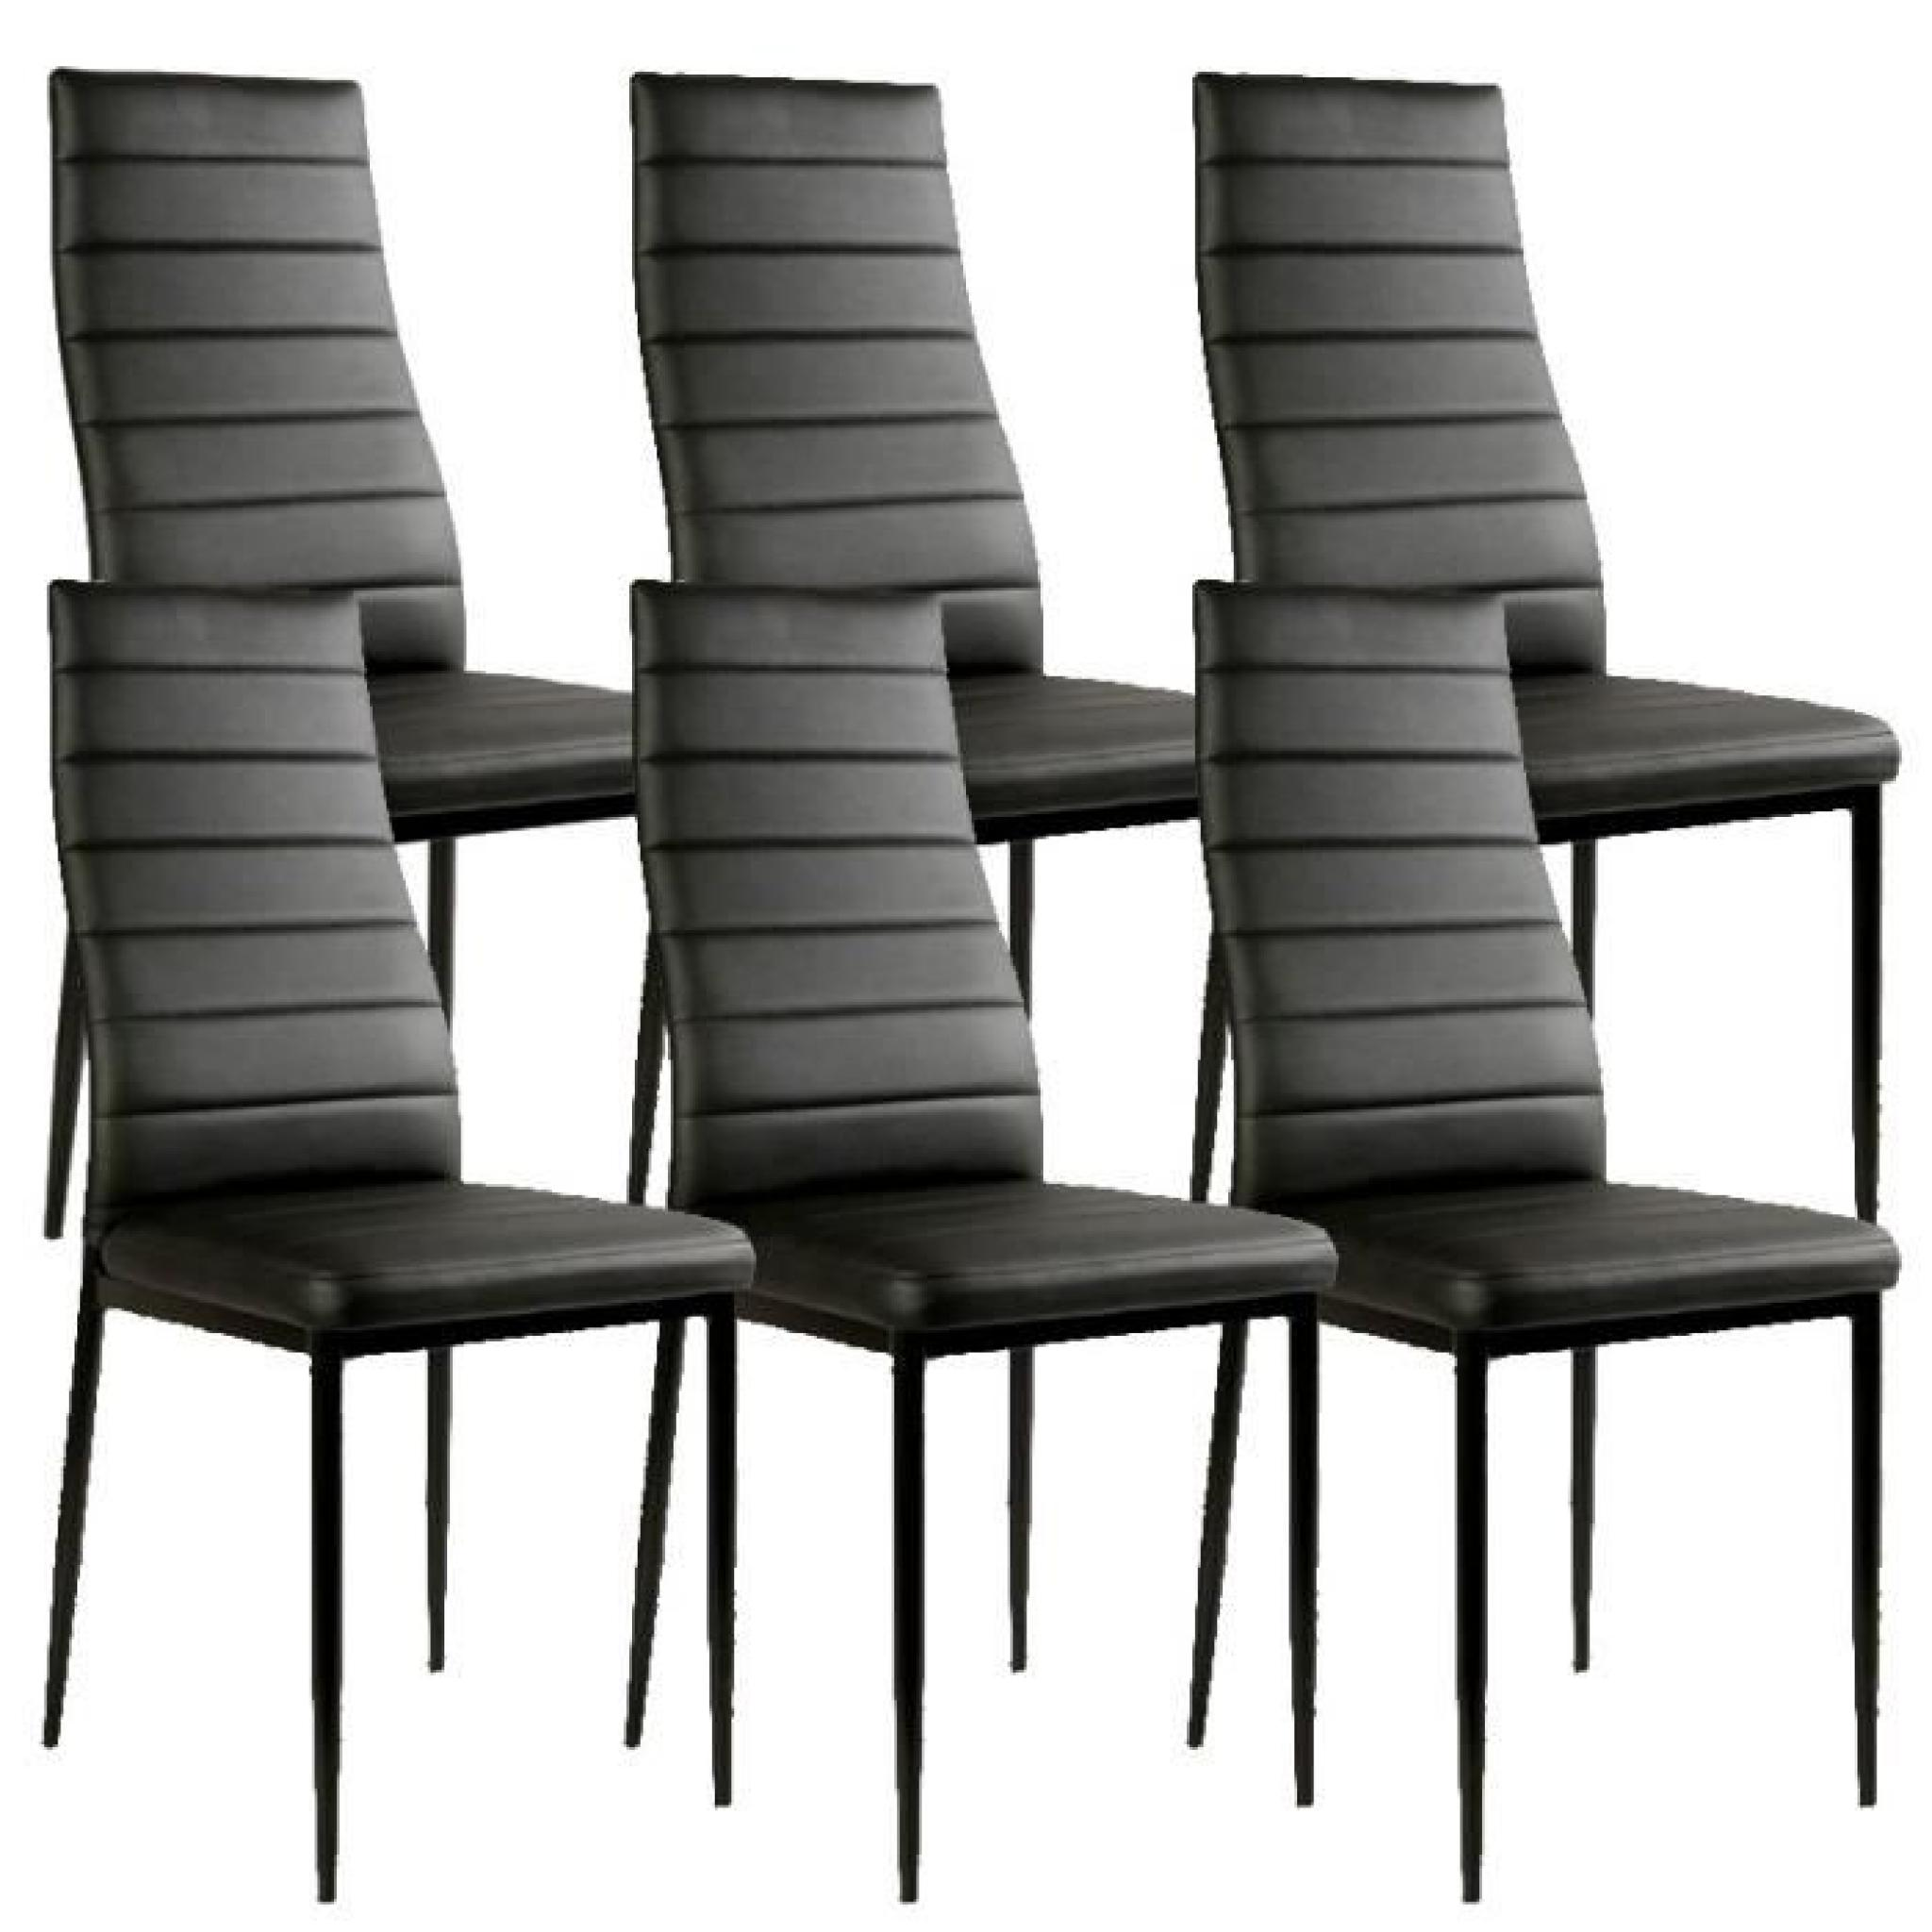 lot 6 chaises pas cher 28 images distingu 233 lot de. Black Bedroom Furniture Sets. Home Design Ideas